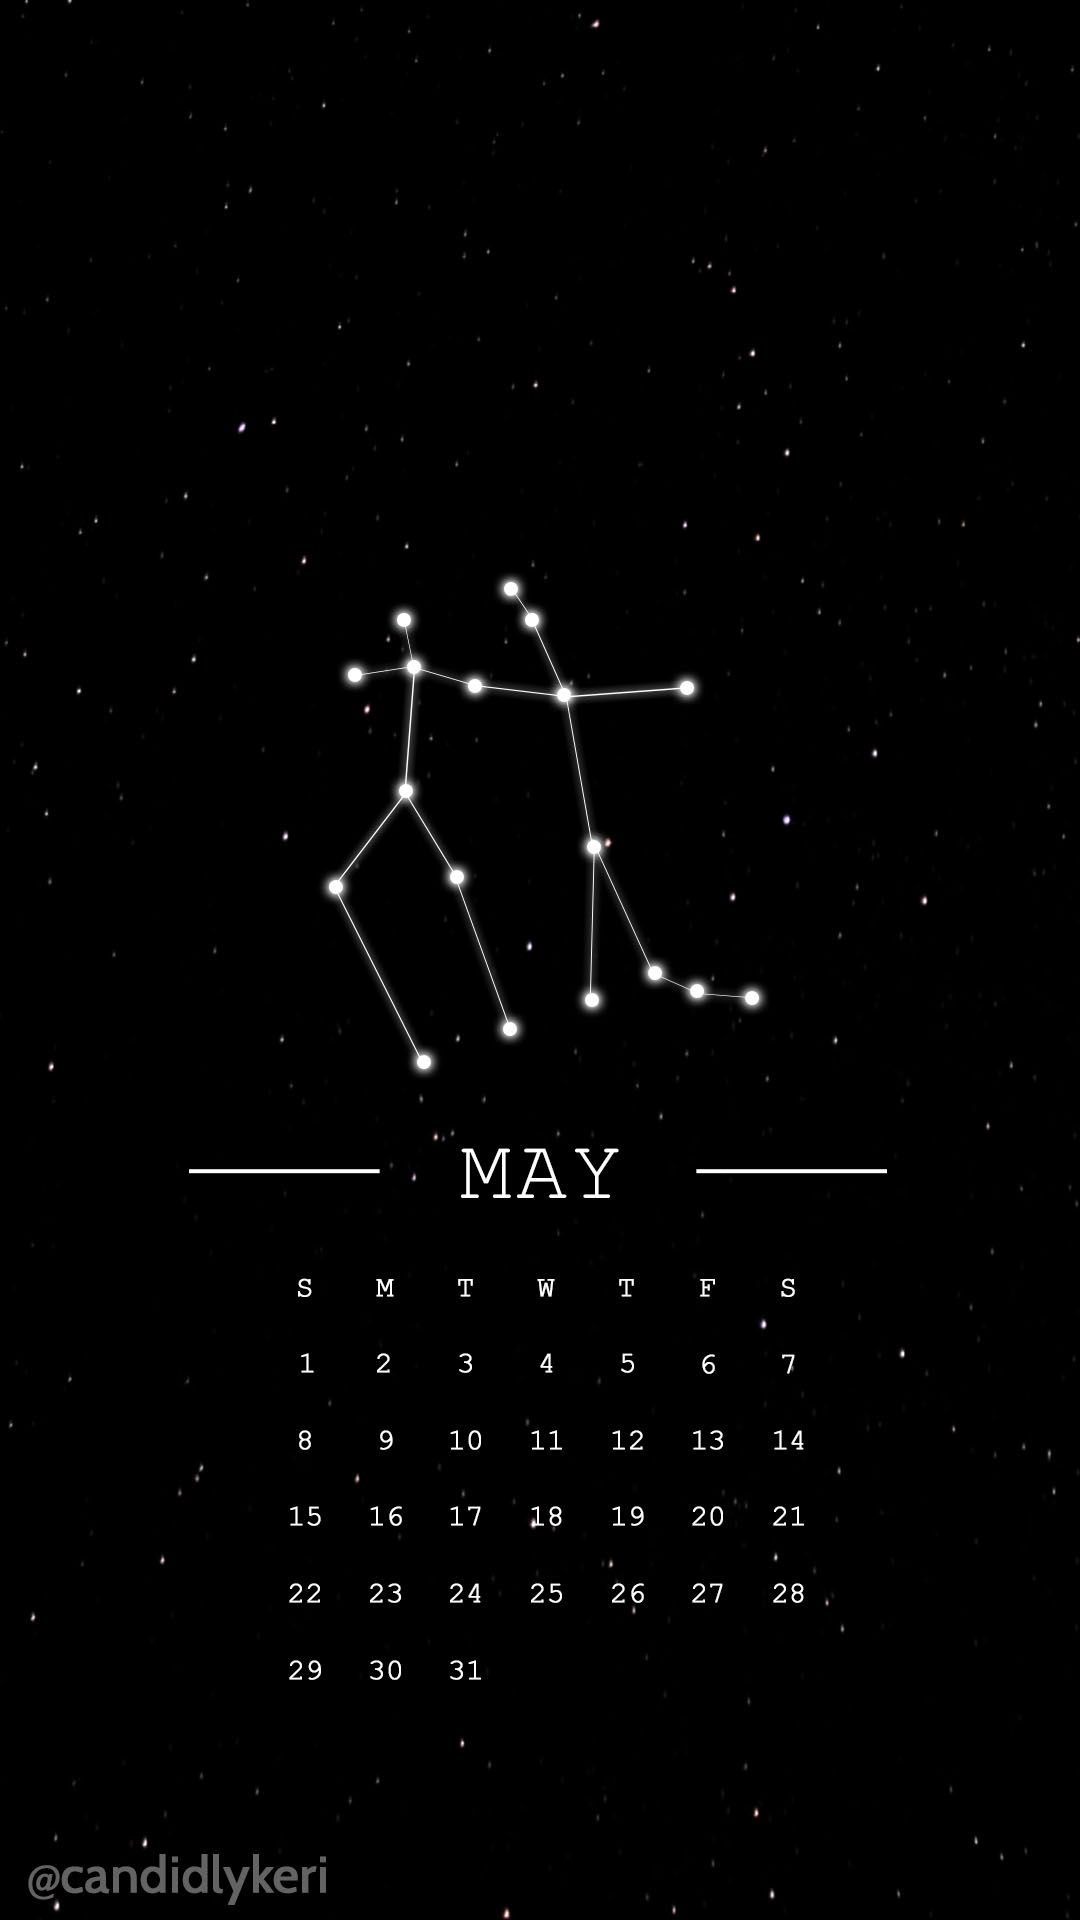 Gemini Horoscope Constellation May 2016 Calendar Wallpaper Free Download For Iphone Android Or Desktop Bac Calendar Wallpaper Gemini Wallpaper Taurus Wallpaper